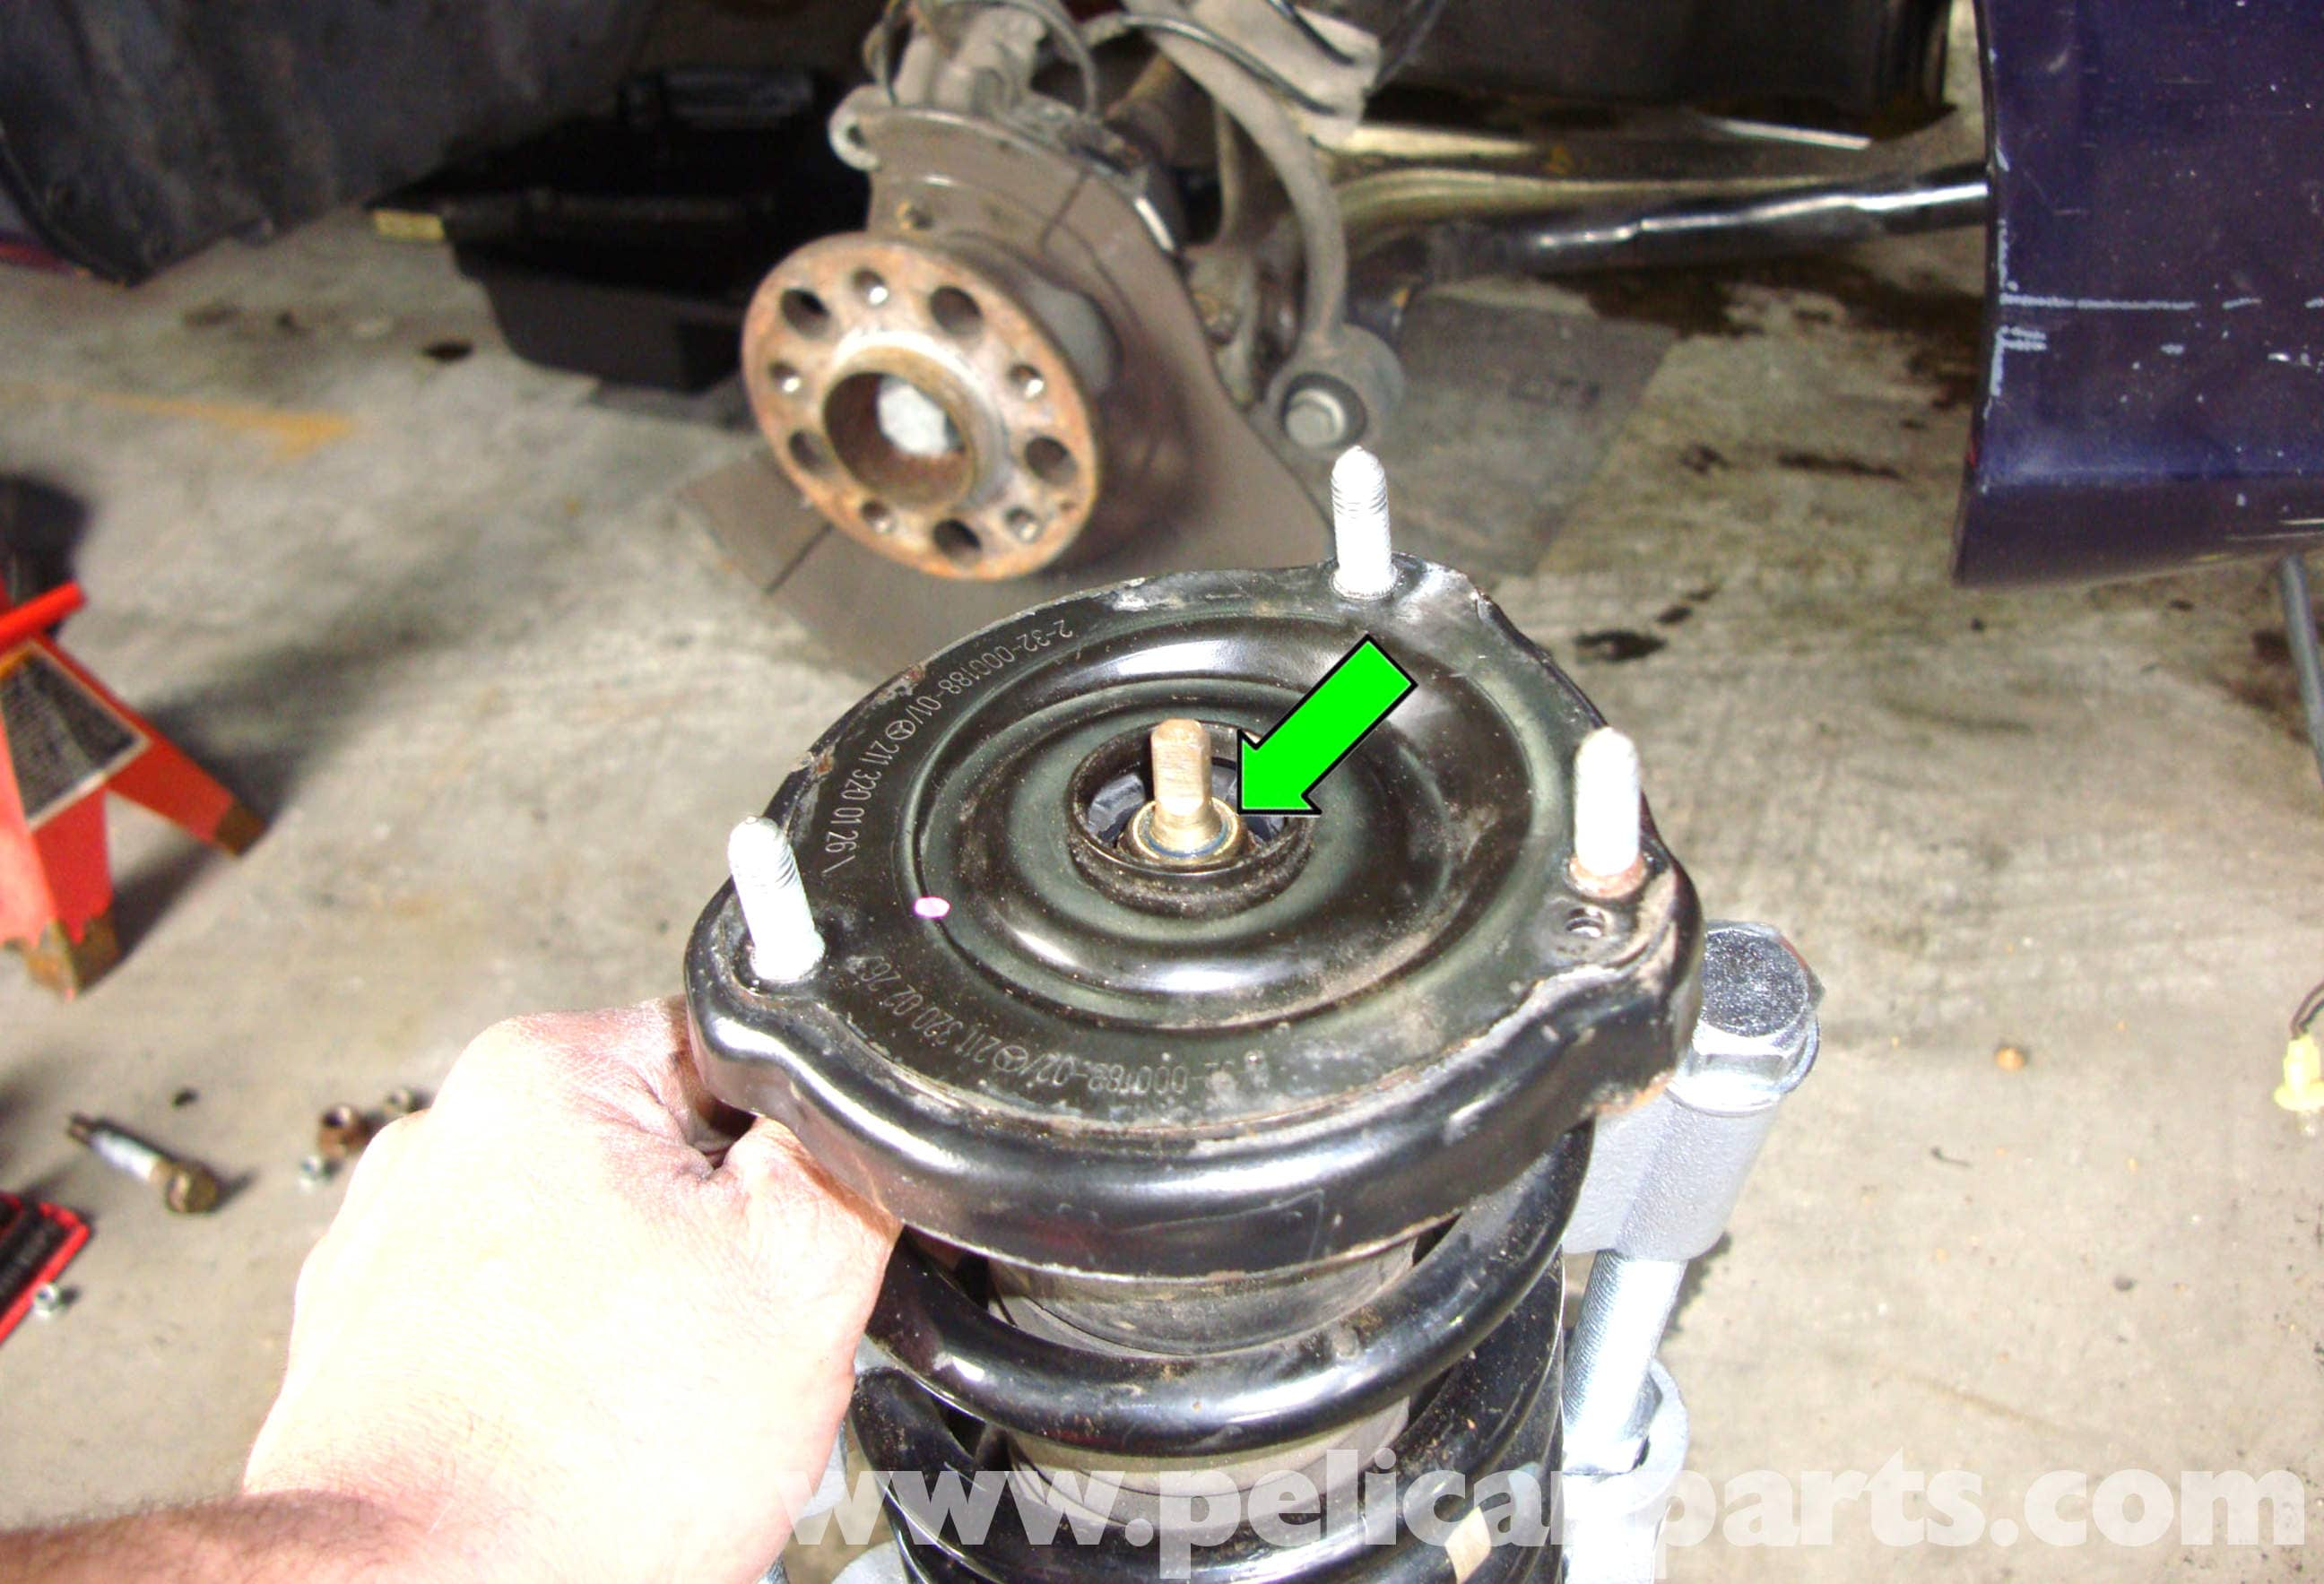 Shock Absorber Replacement : Mercedes benz w front shock absorber replacement